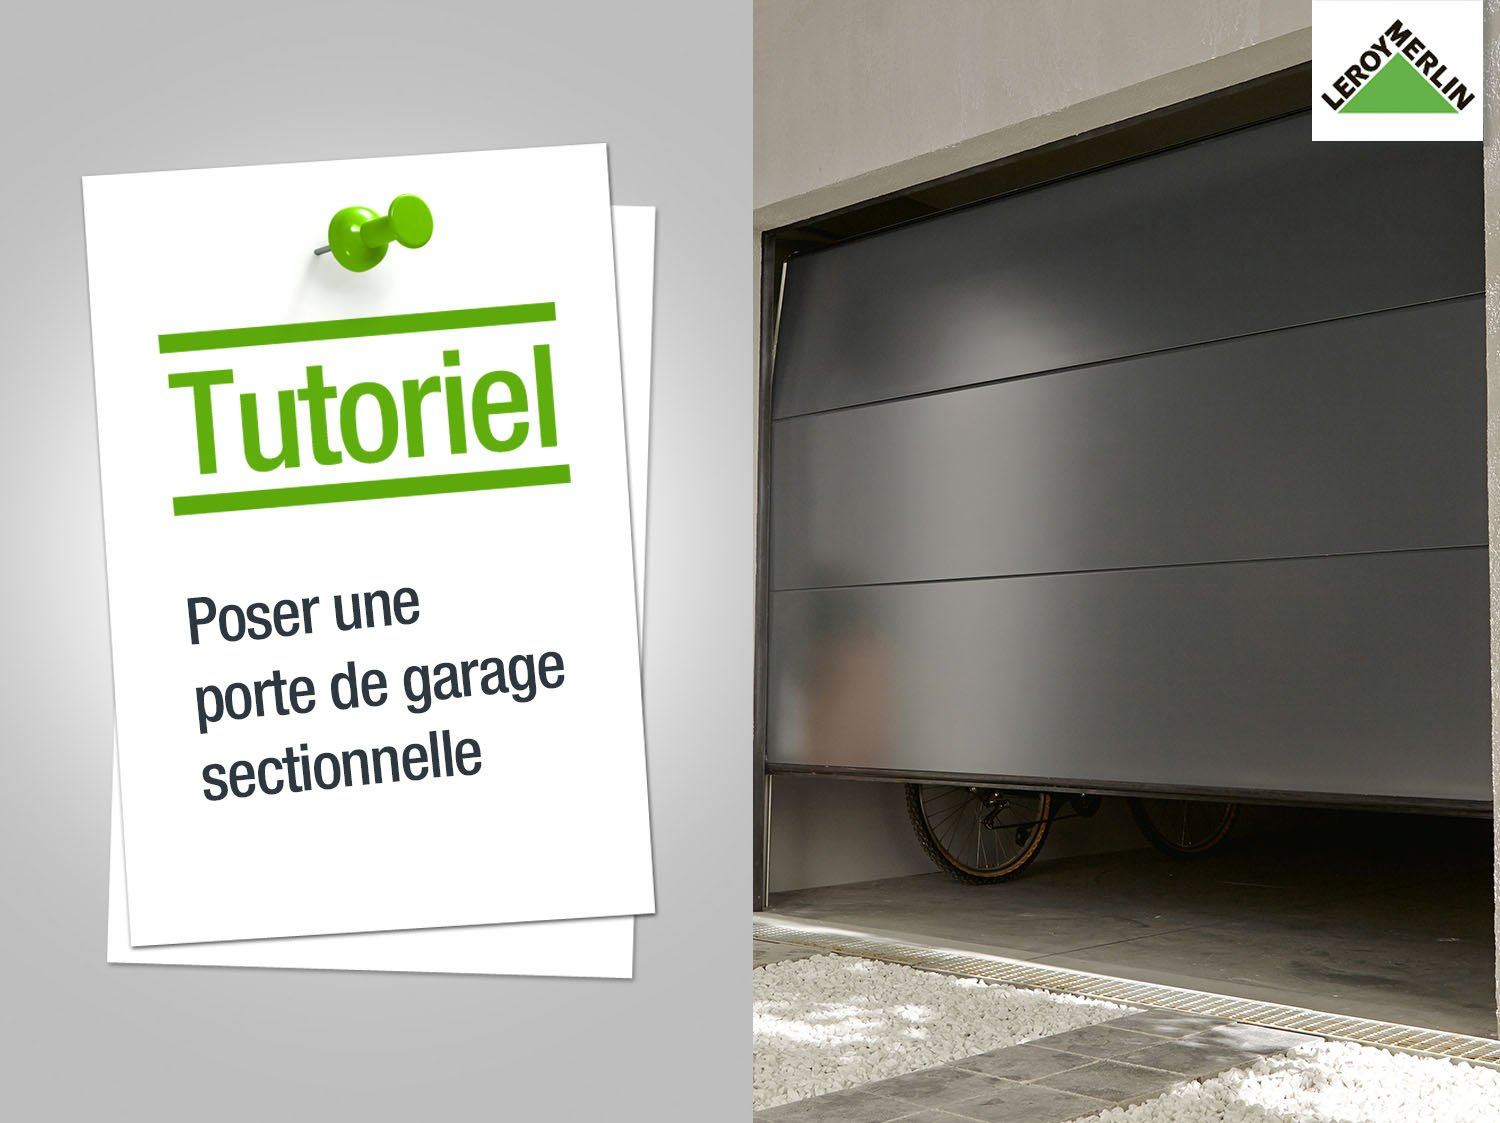 Porte de garage sectionnelle leroy merlin sur mesure isolation id es Porte garage sur mesure